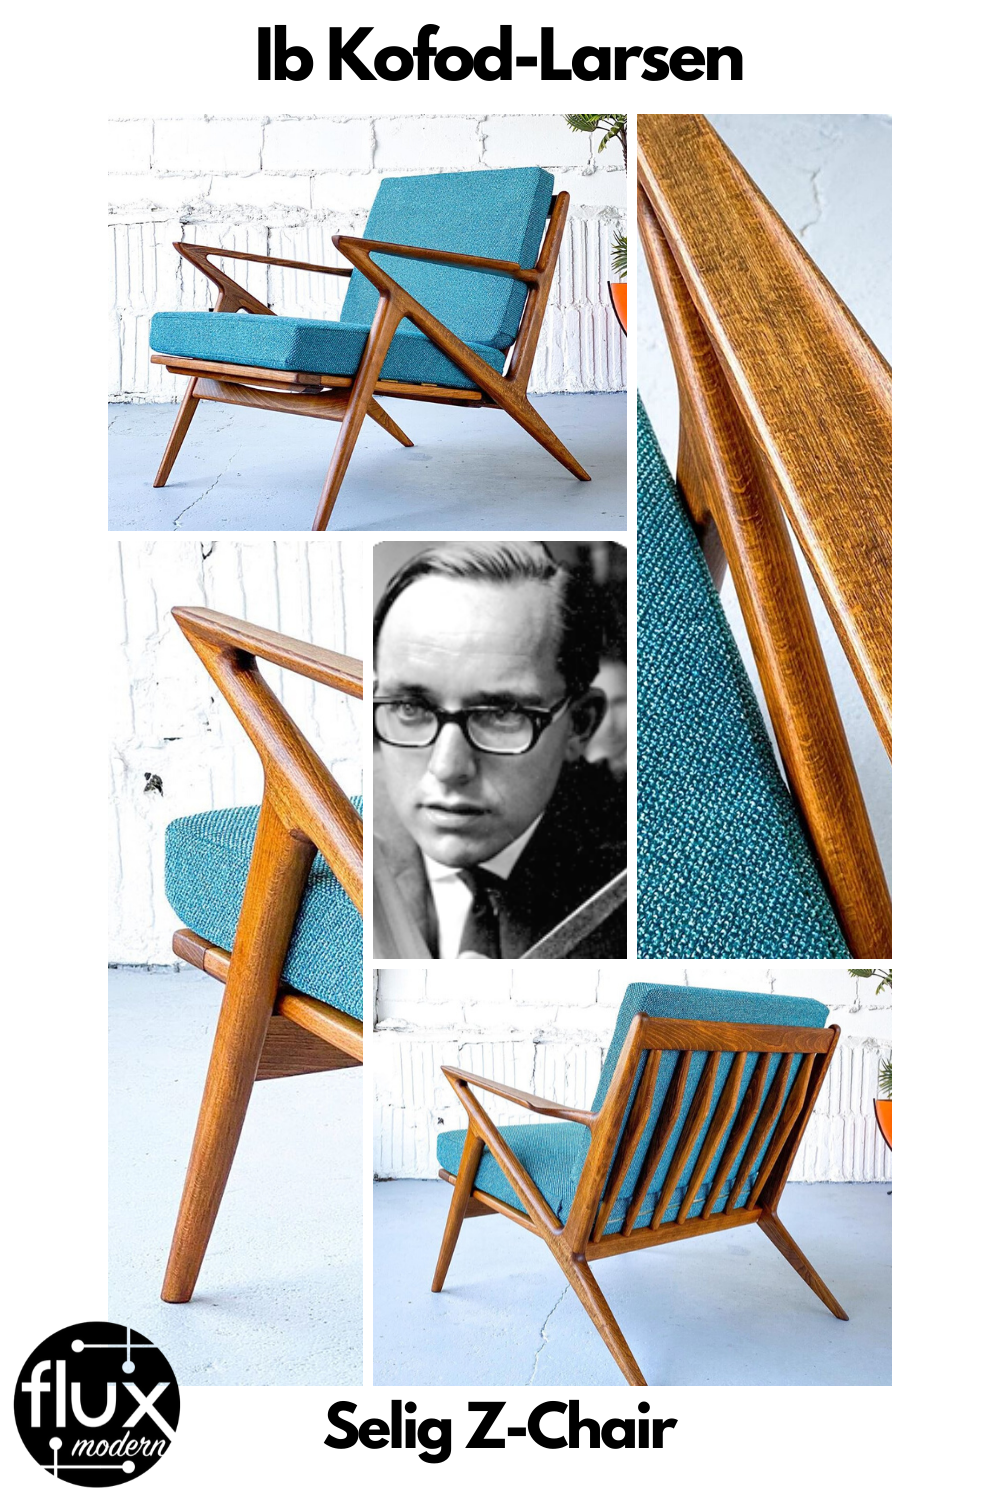 Check out this article by Vintage Home Boutique for a comprehensive look at the life and work of designer Ib Kofod-Larsen. Our most recent piece of his at Flux was this iconic Z-chair, made by Selig and reupholstered by us!  Visit our instagram for more Kofod-Larsen pieces, @fluxmodern  #asburypark #nj #travelnj #zchair #pouljensen #kofodlarsen #ibkofodlarsen #selig #danishmodern #midcenturymodern #midcentury #vintage #fluxmodern